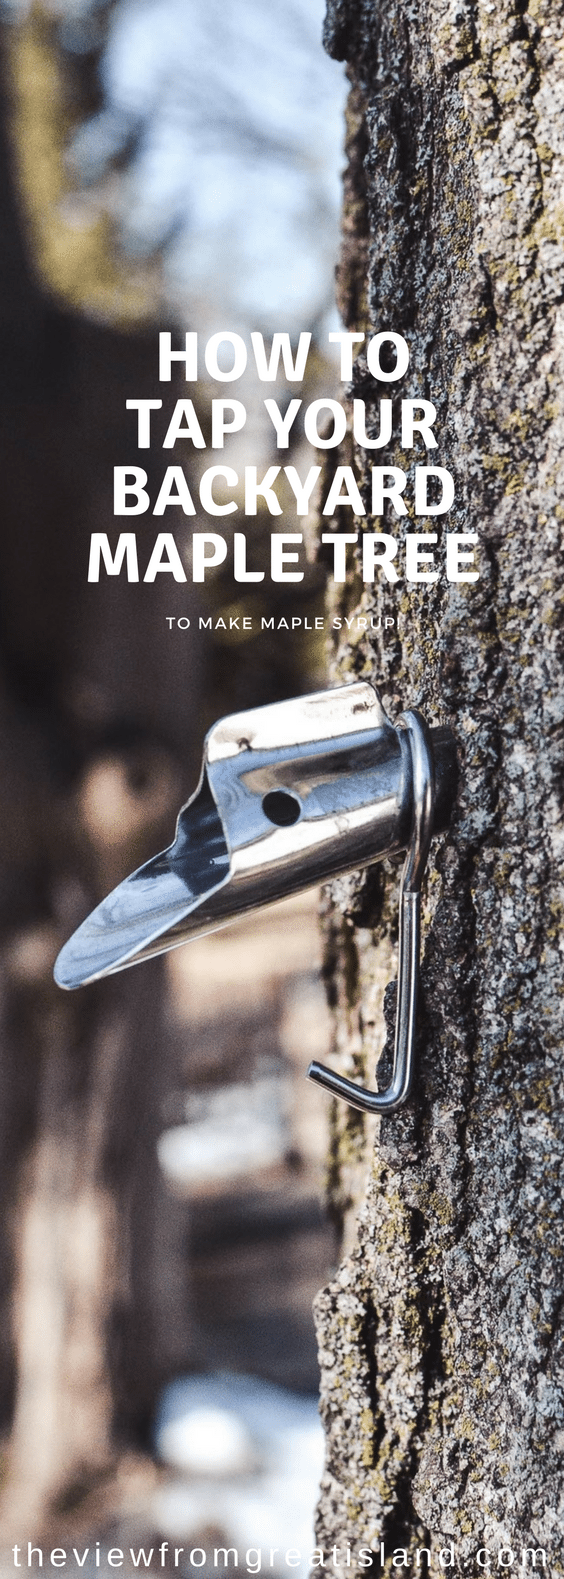 You can make maple syrup at home! If you've got a sugar maple tree in your yard (or a neighbor who's willing to share) you can tap it and make your own amazing maple syrup. #maplesugaring #mapletapping #maple #maplesyrup #homemademaplesyrup #diymaplesyrup #sugarmaple